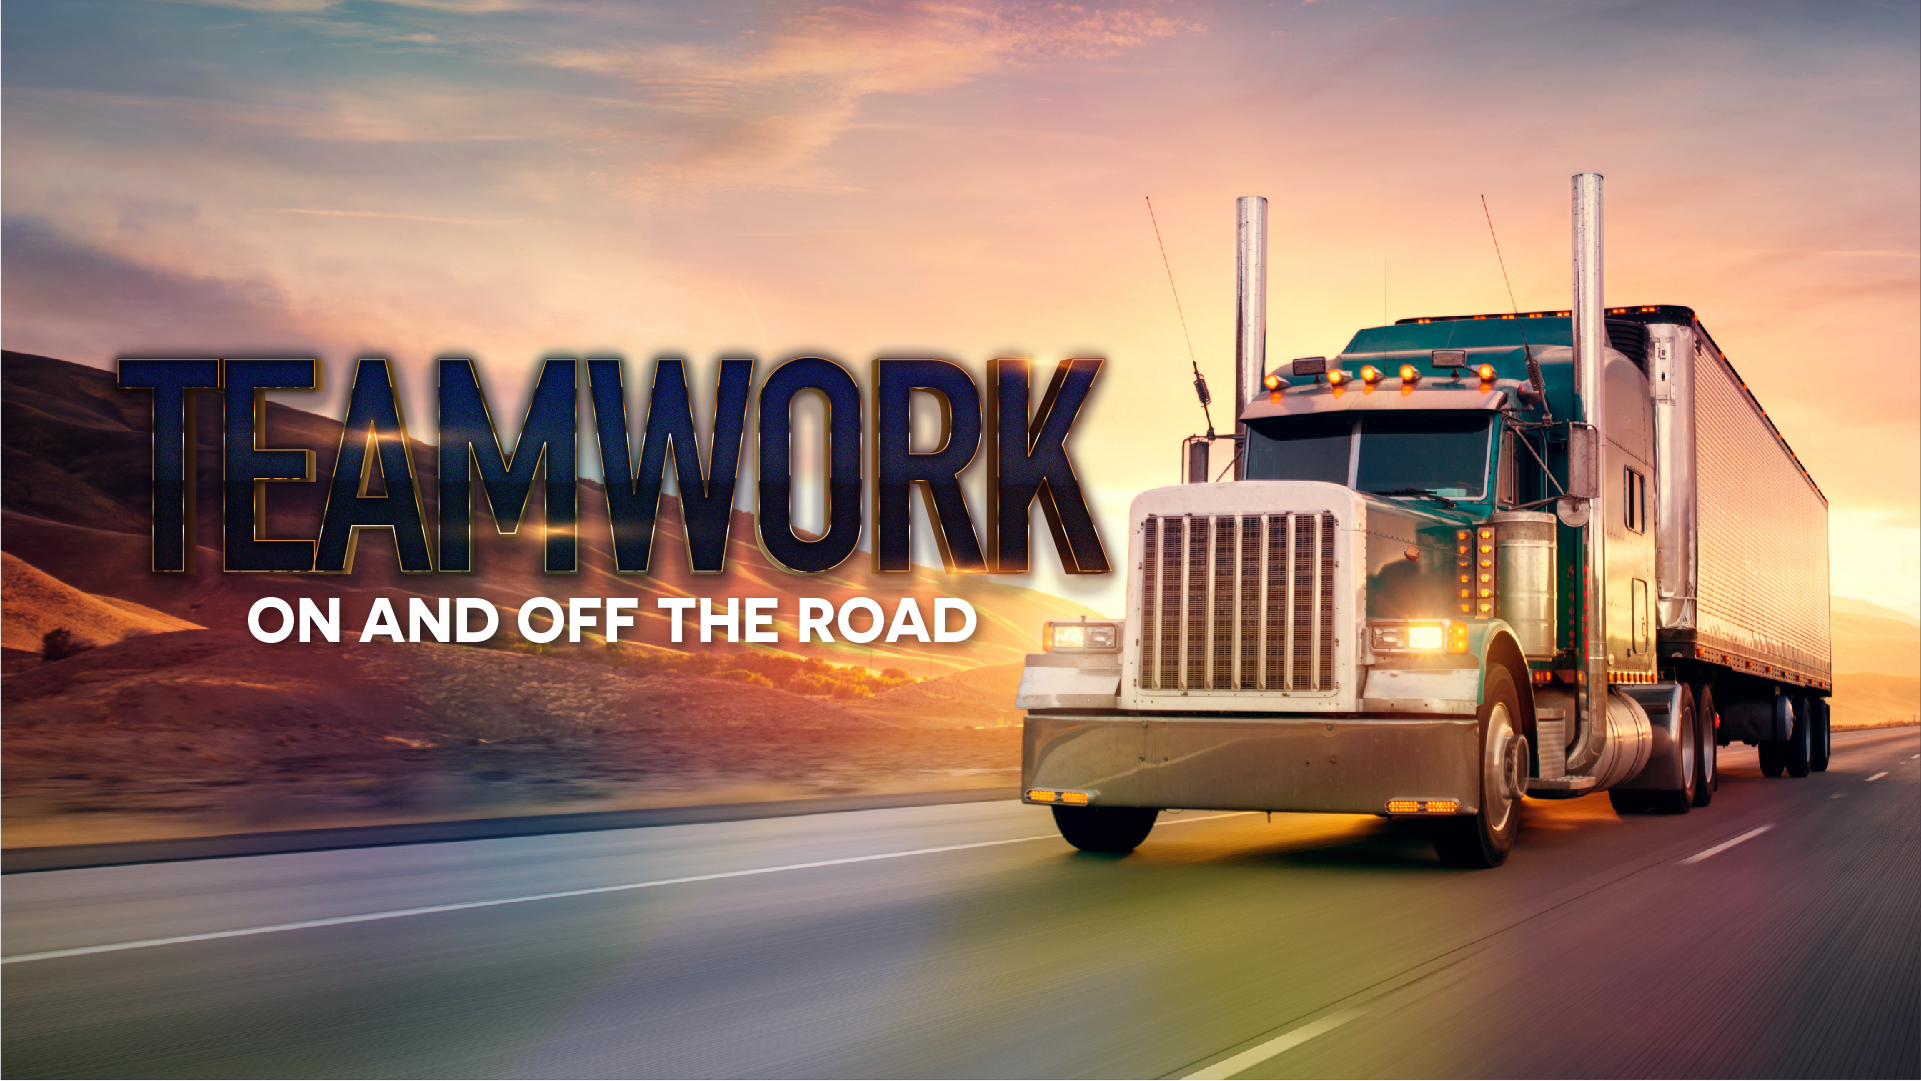 TEAMWORK, ON AND OFF THE ROAD